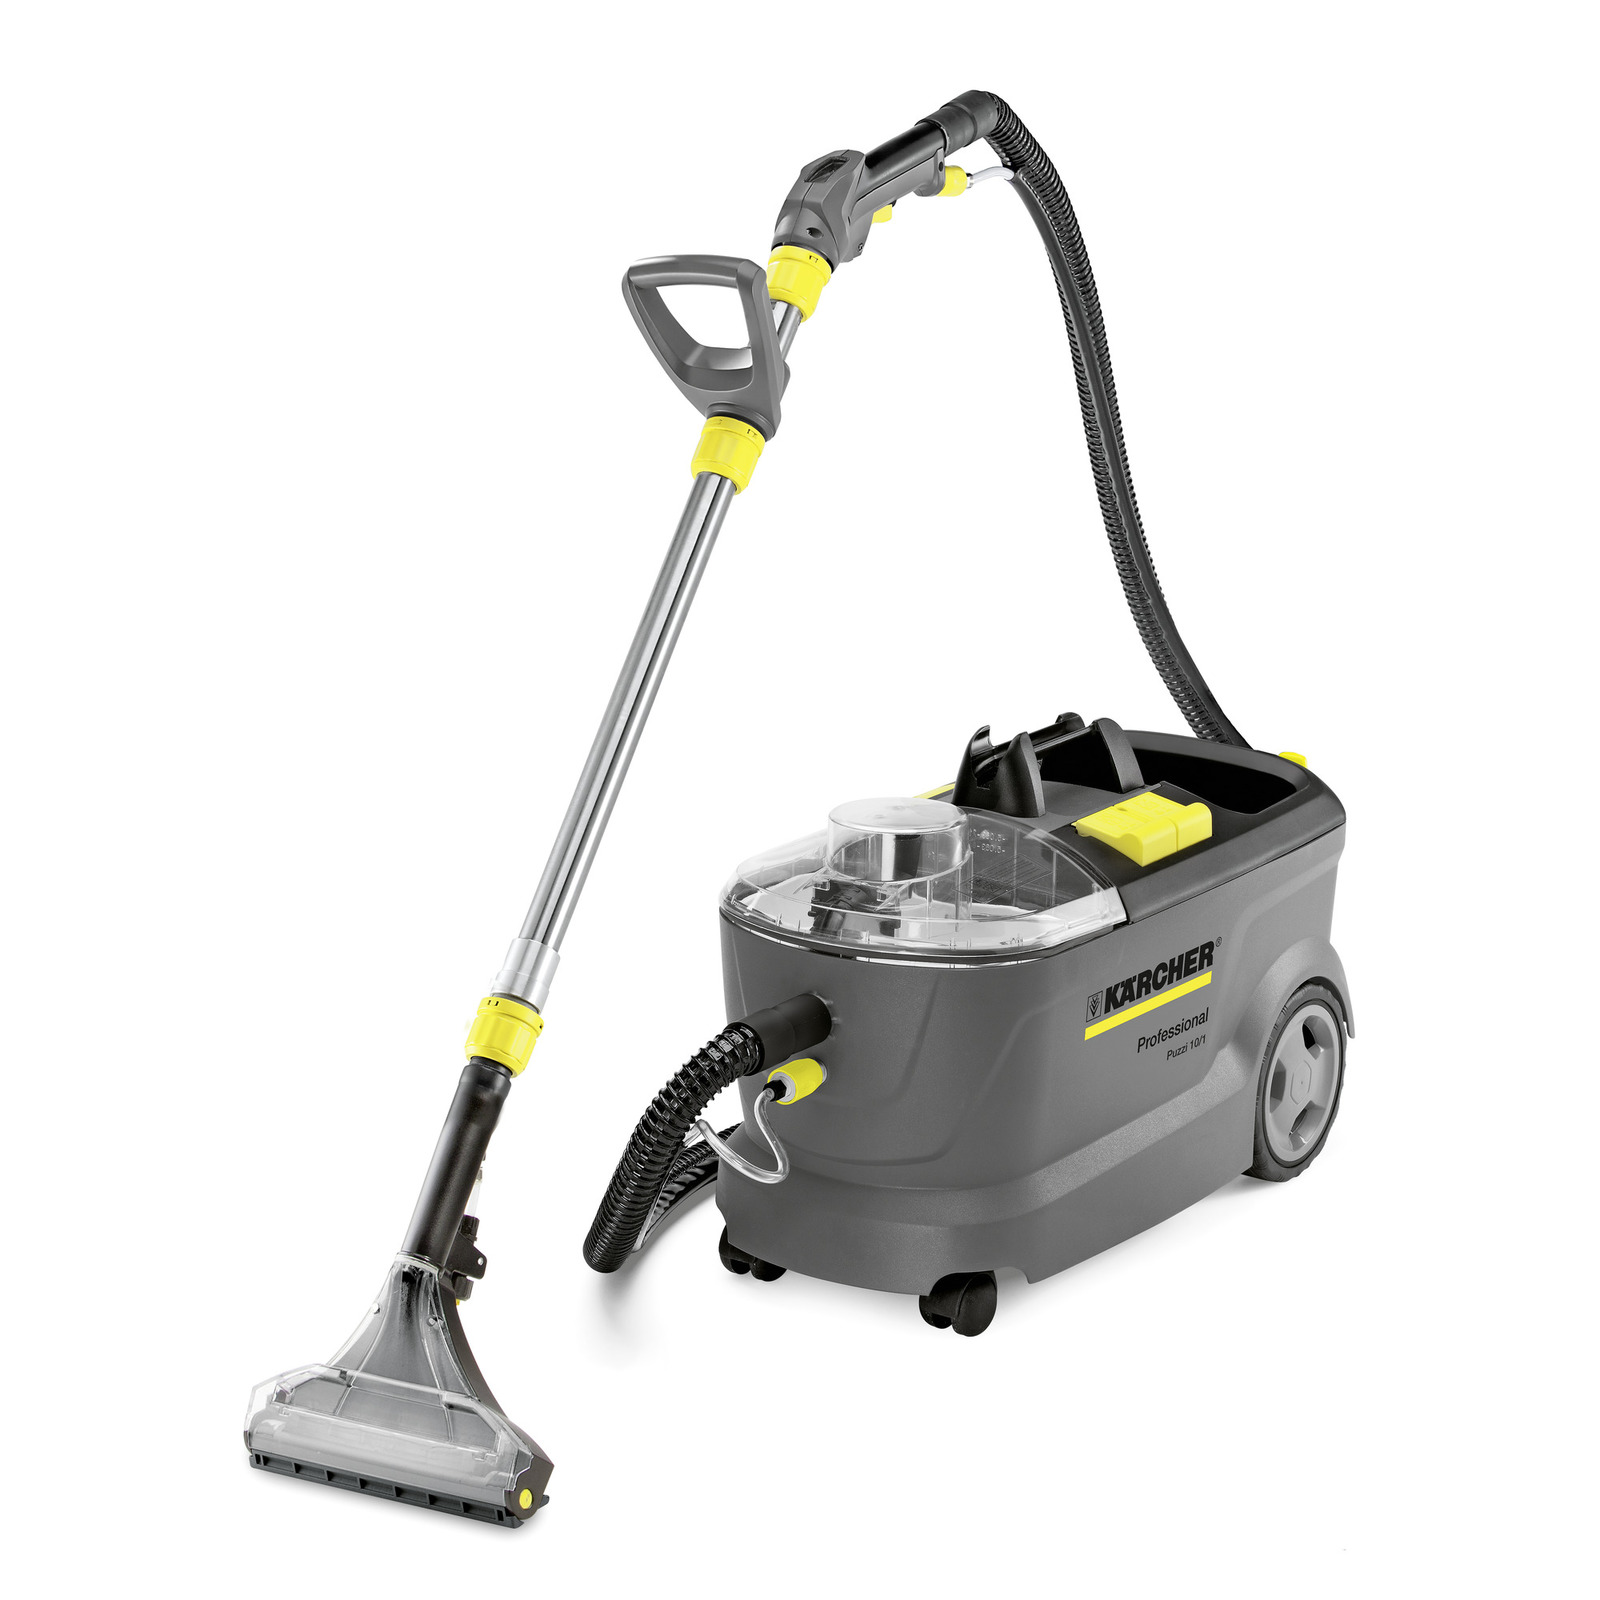 ... cleaner with revolutionary flexible suction tool, providing new levels of convenience and ease of use for cleaning carpets and upholstery.